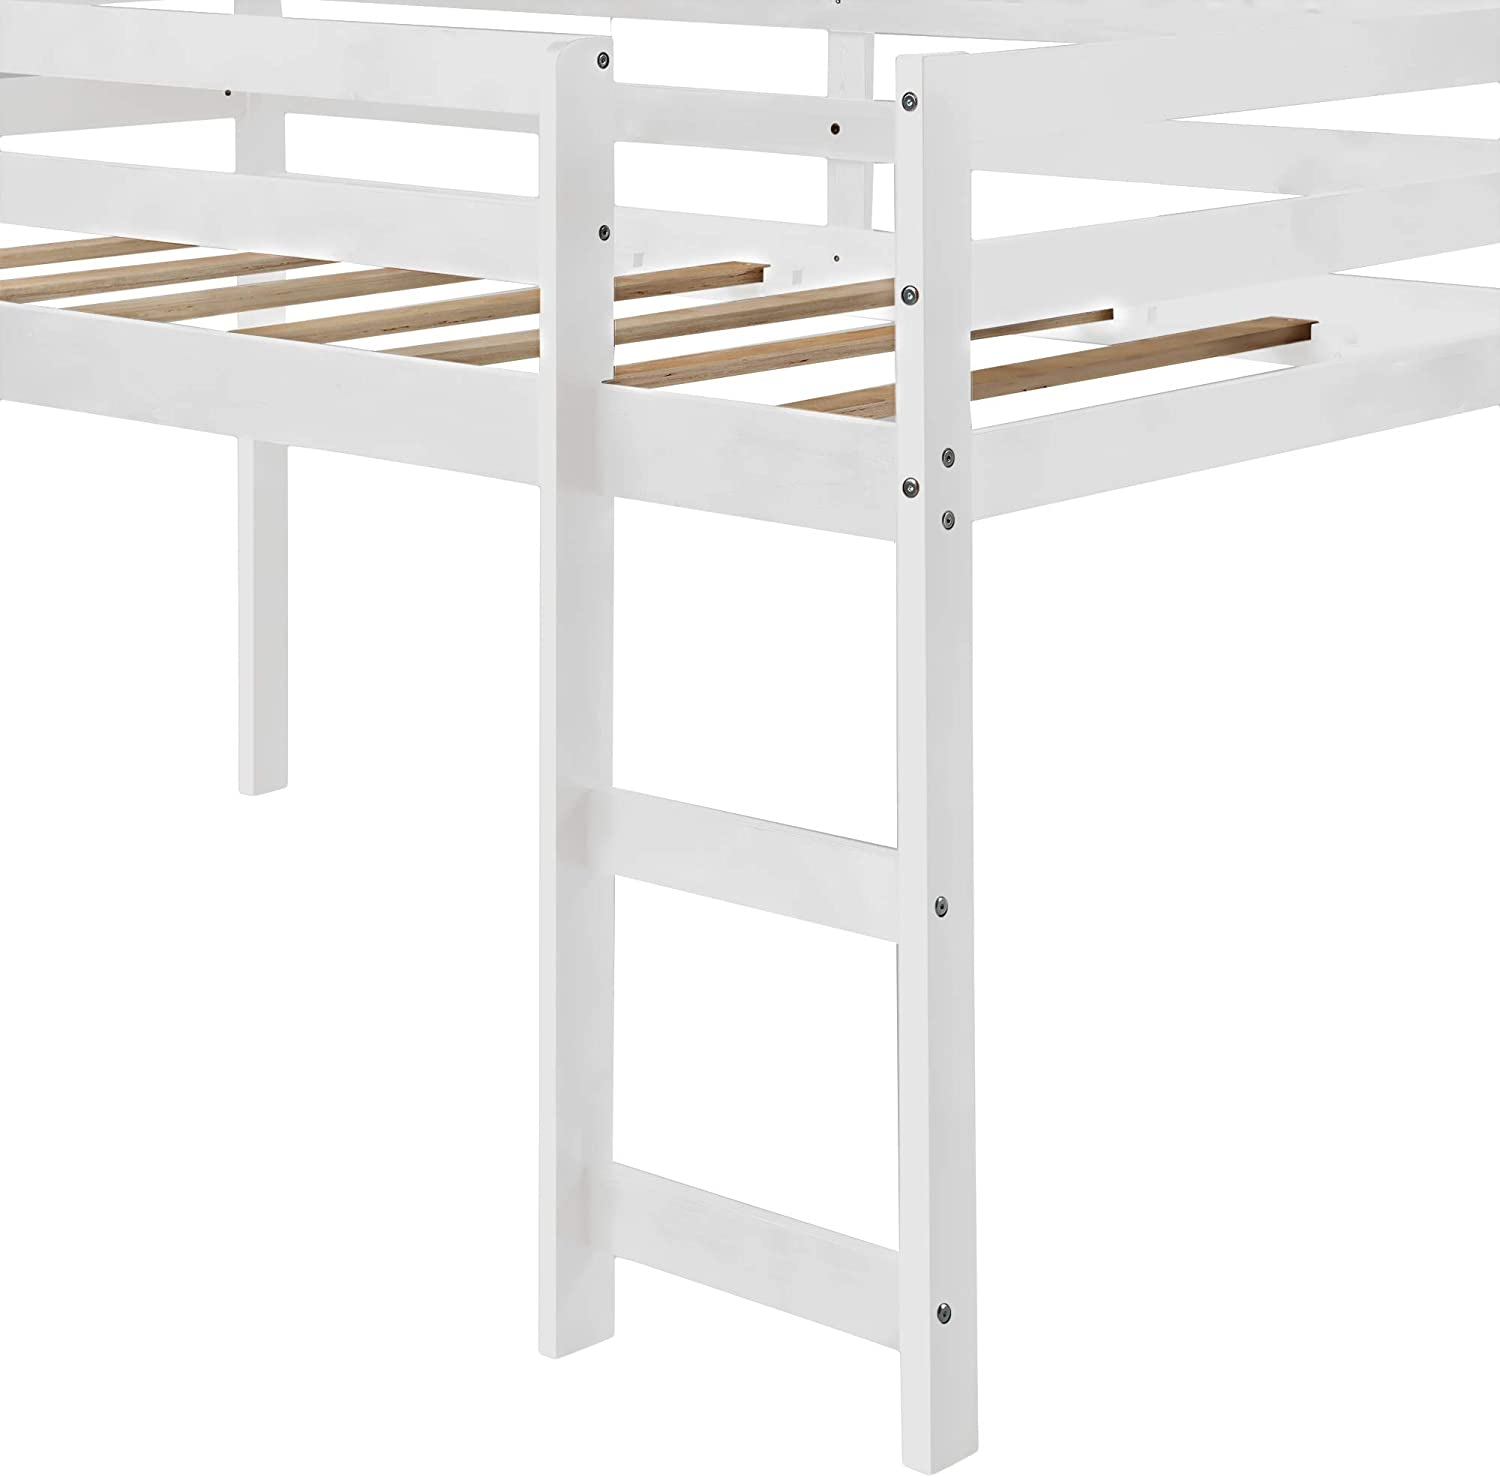 Wooden Twin Loft Bed Frame for Bedroom GHEDA Wood Loft Bed with Slide and Ladder for Kids No Box Spring Needed White